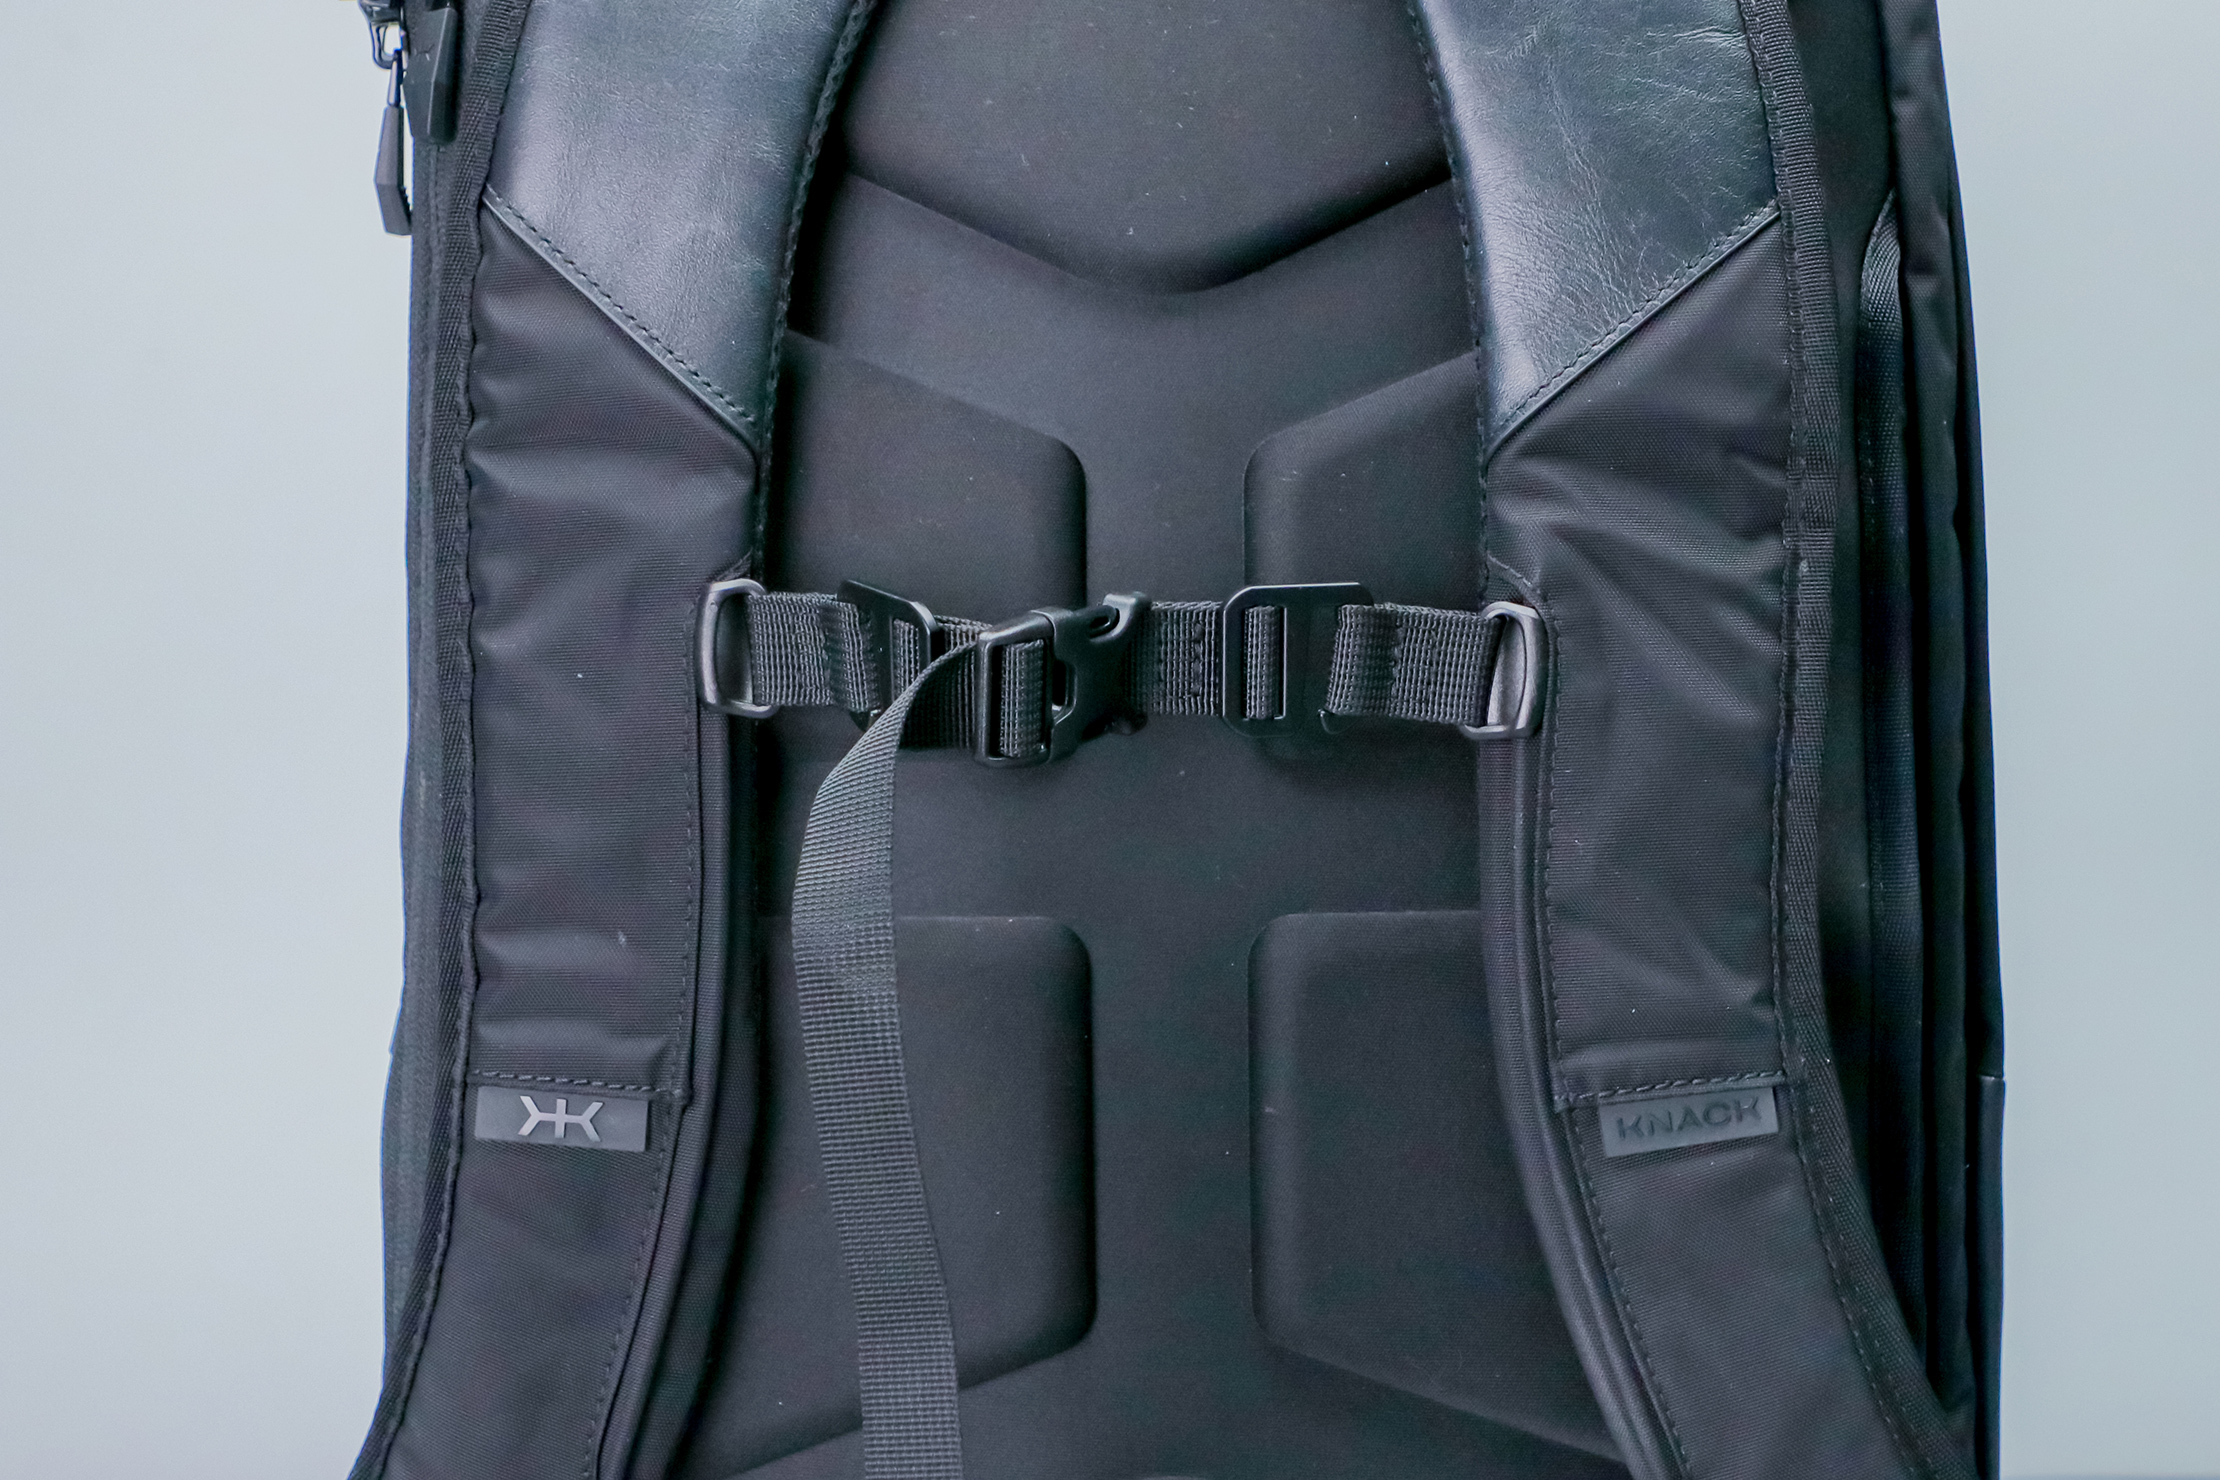 Knack Medium Expandable Pack Series 2 harness system